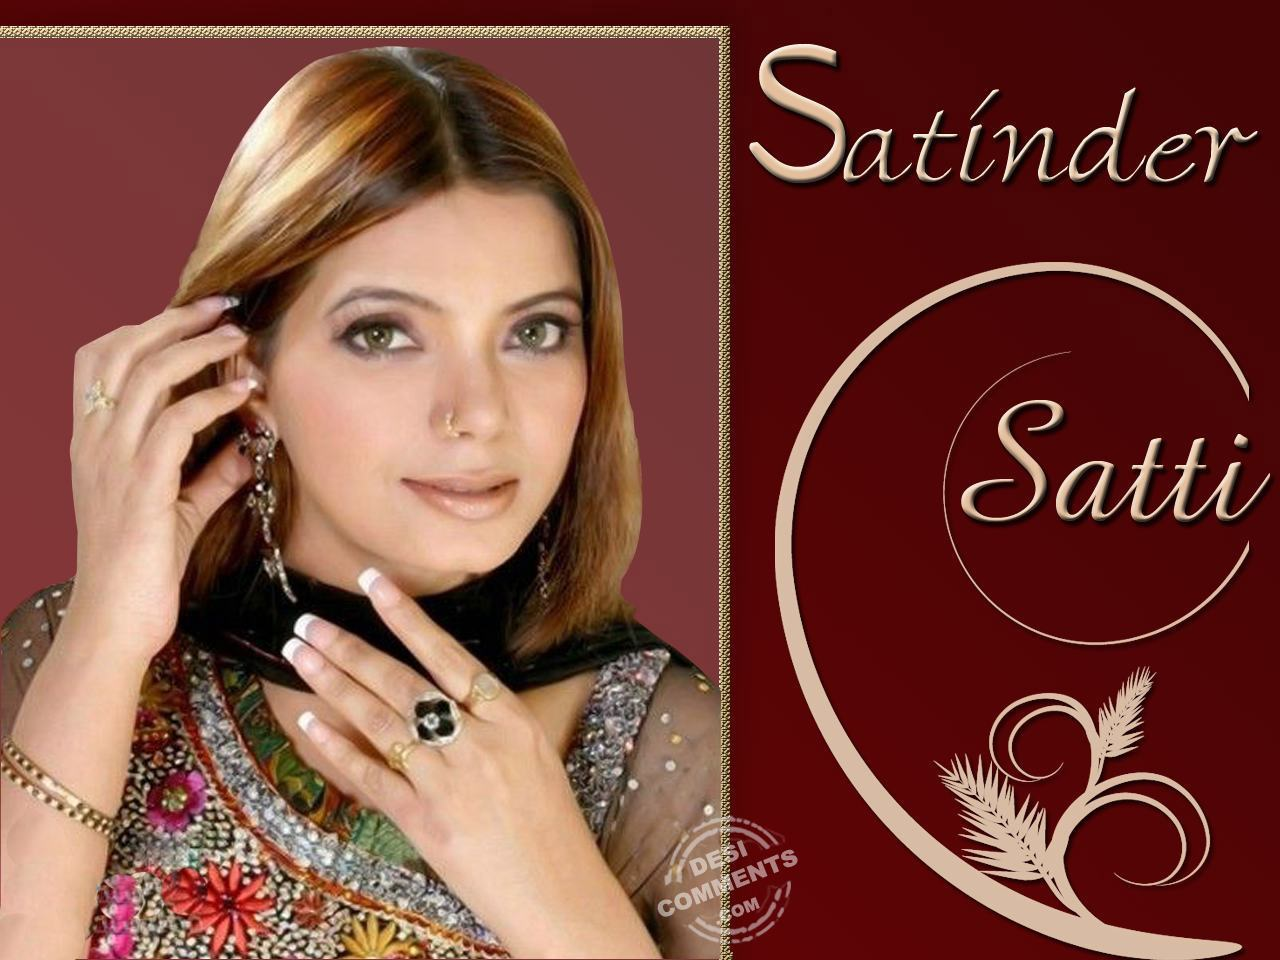 Satinder-Satti-Wallpaper-2 - Satinder-Satti-Wallpaper-2